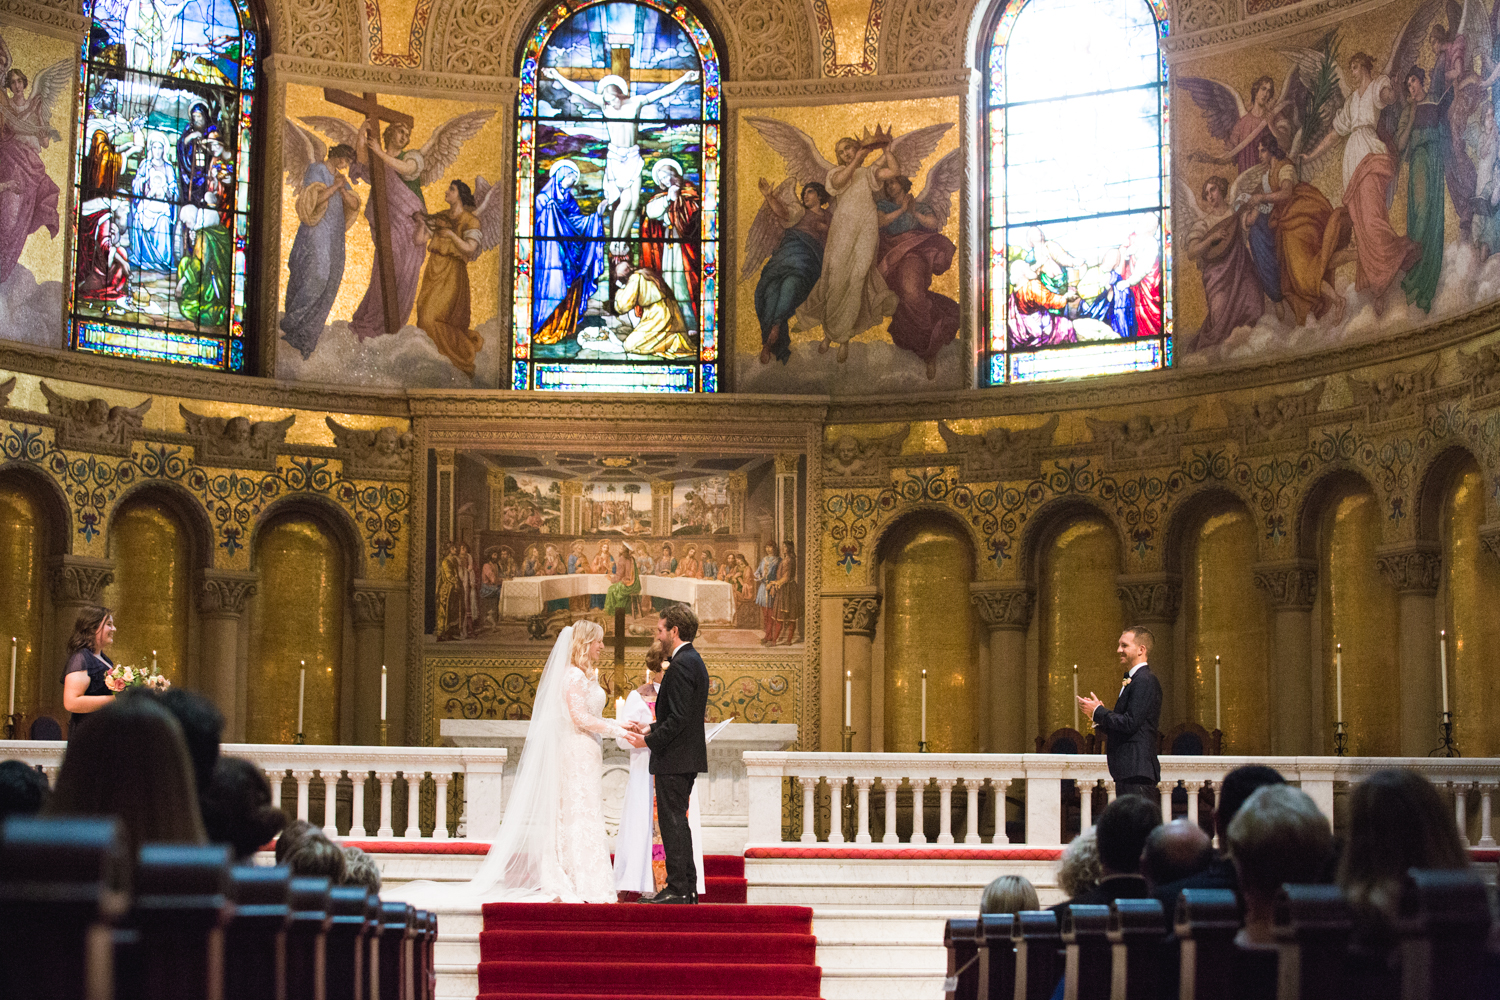 wedding-stanford-church-ceremony.jpg